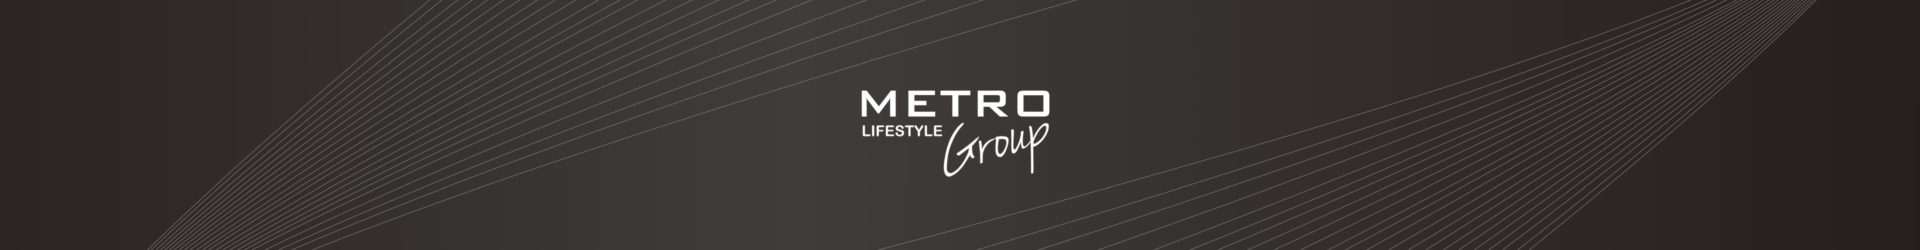 Metropolitan Storage: One-Year-Free Promotion